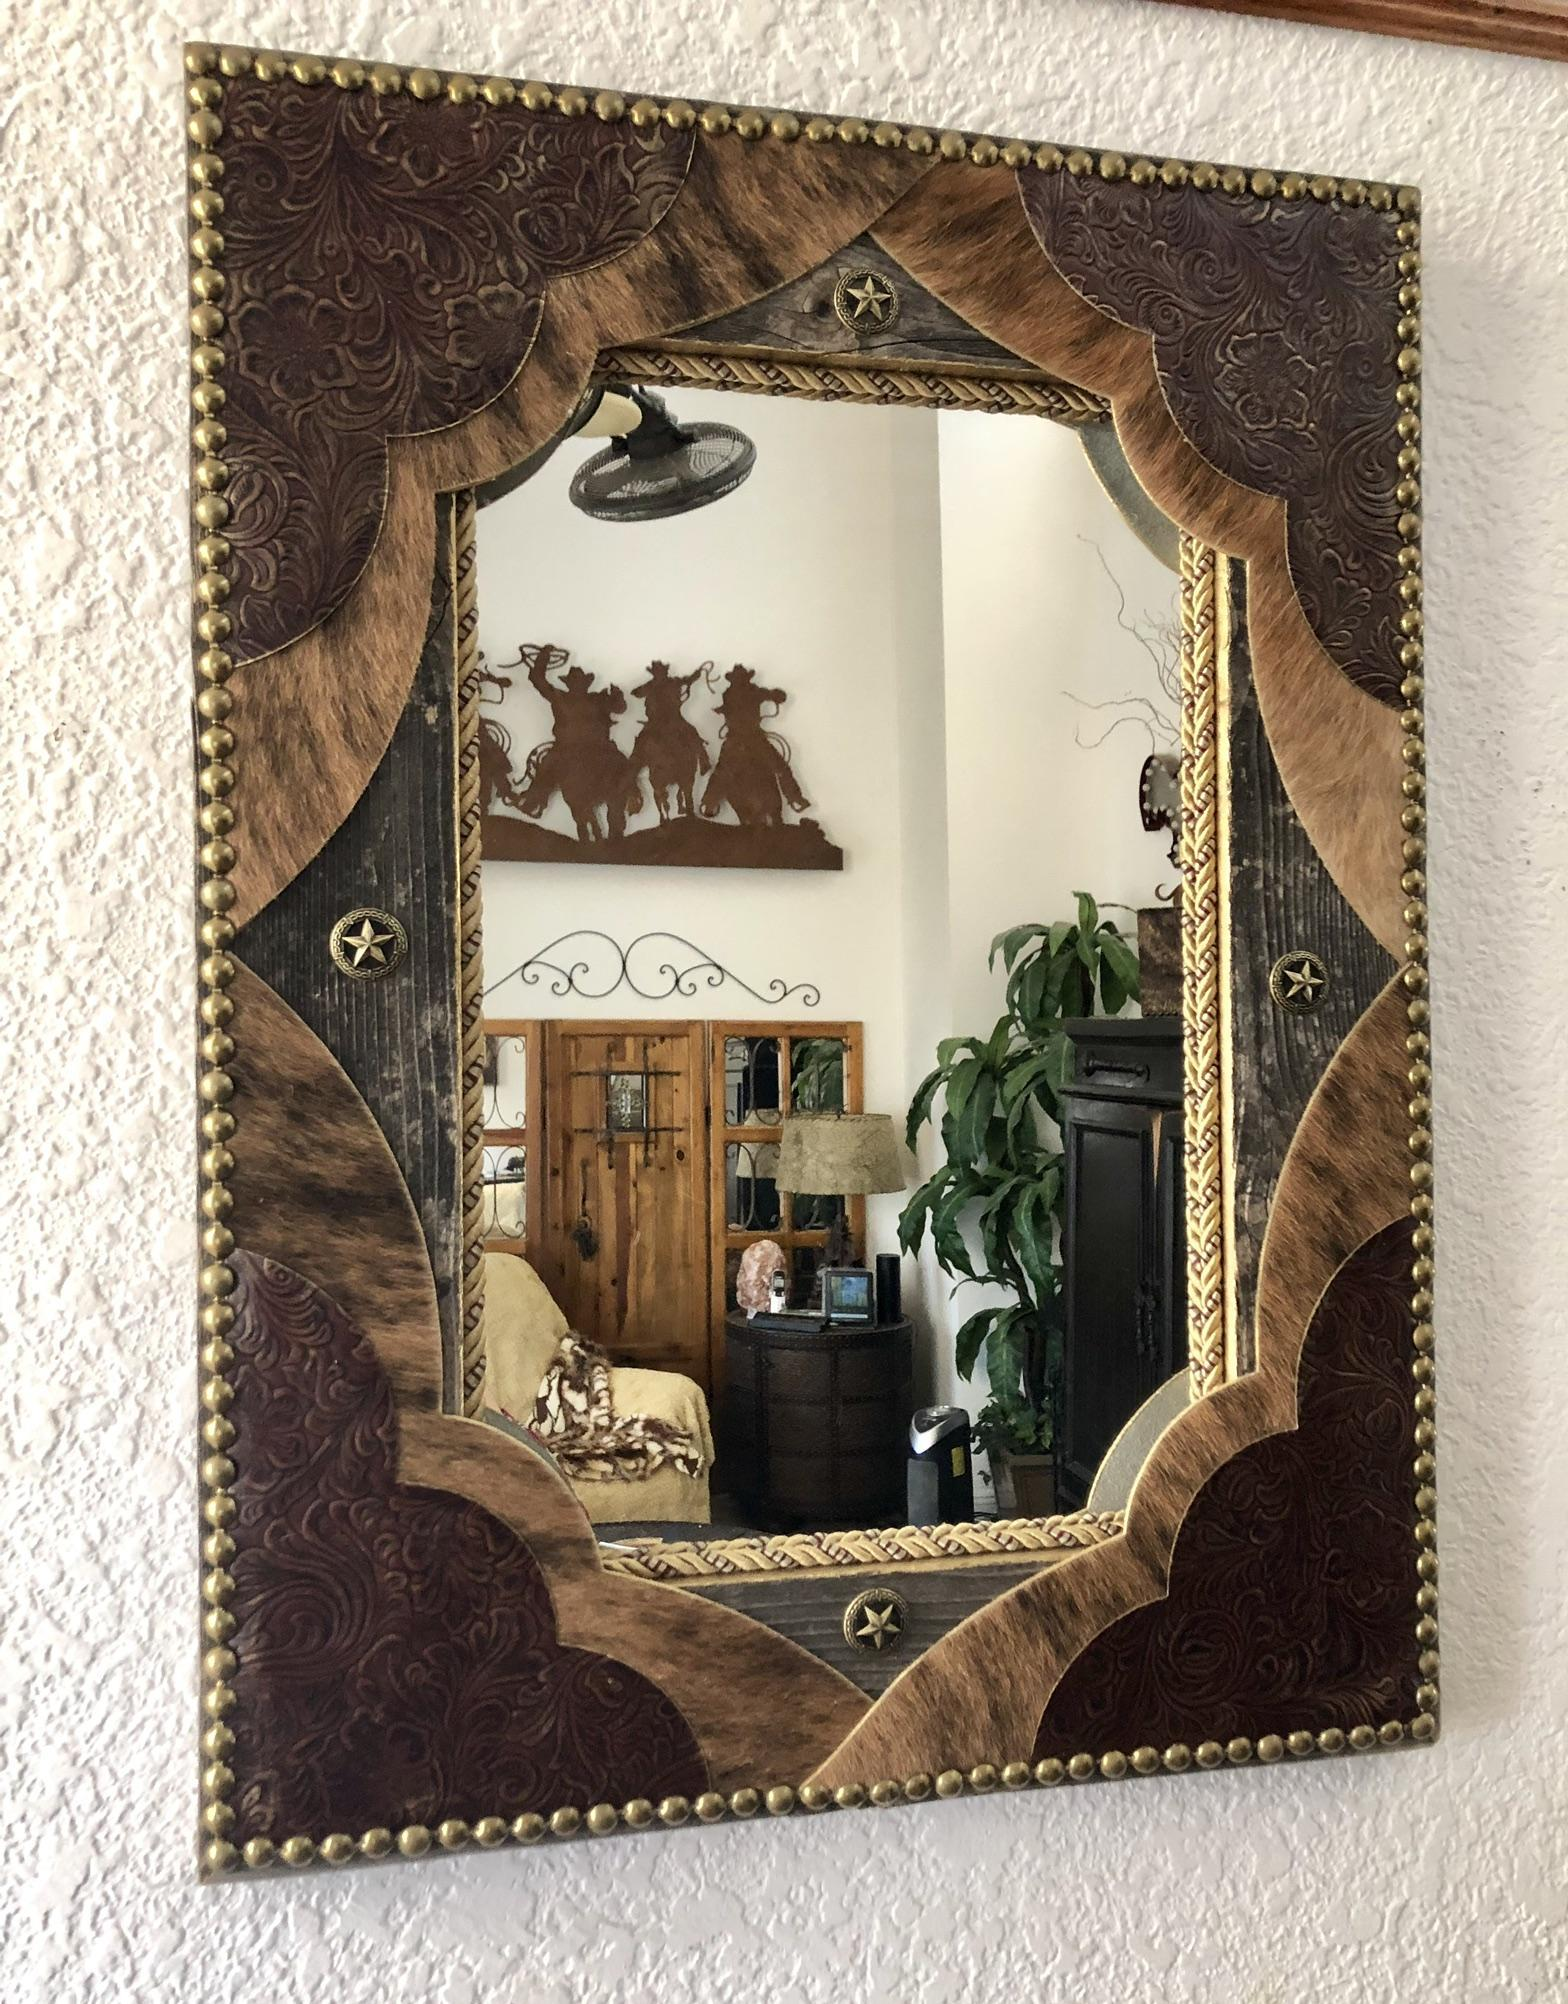 Tooled Leather Amp Cowhide Fancy Western Decor Wall Mirror